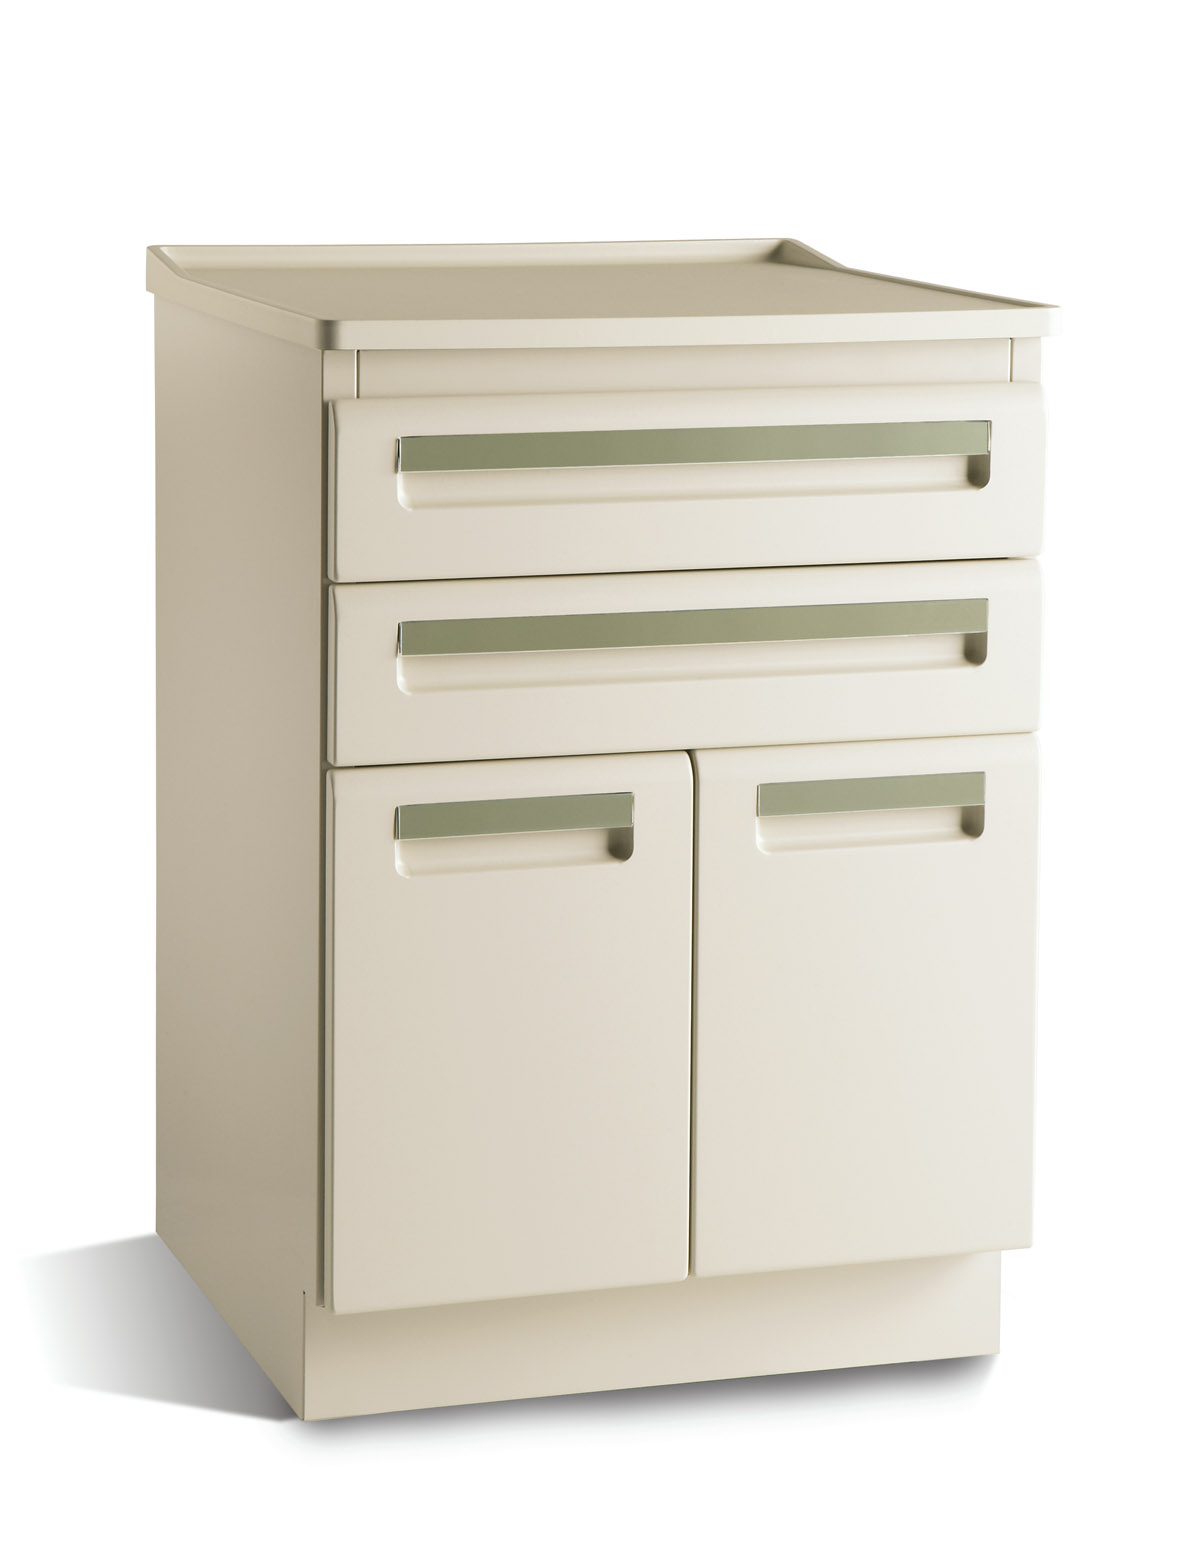 CABINET, TREATMENT, 24x18, 2 DR/2 DRW, NAVY